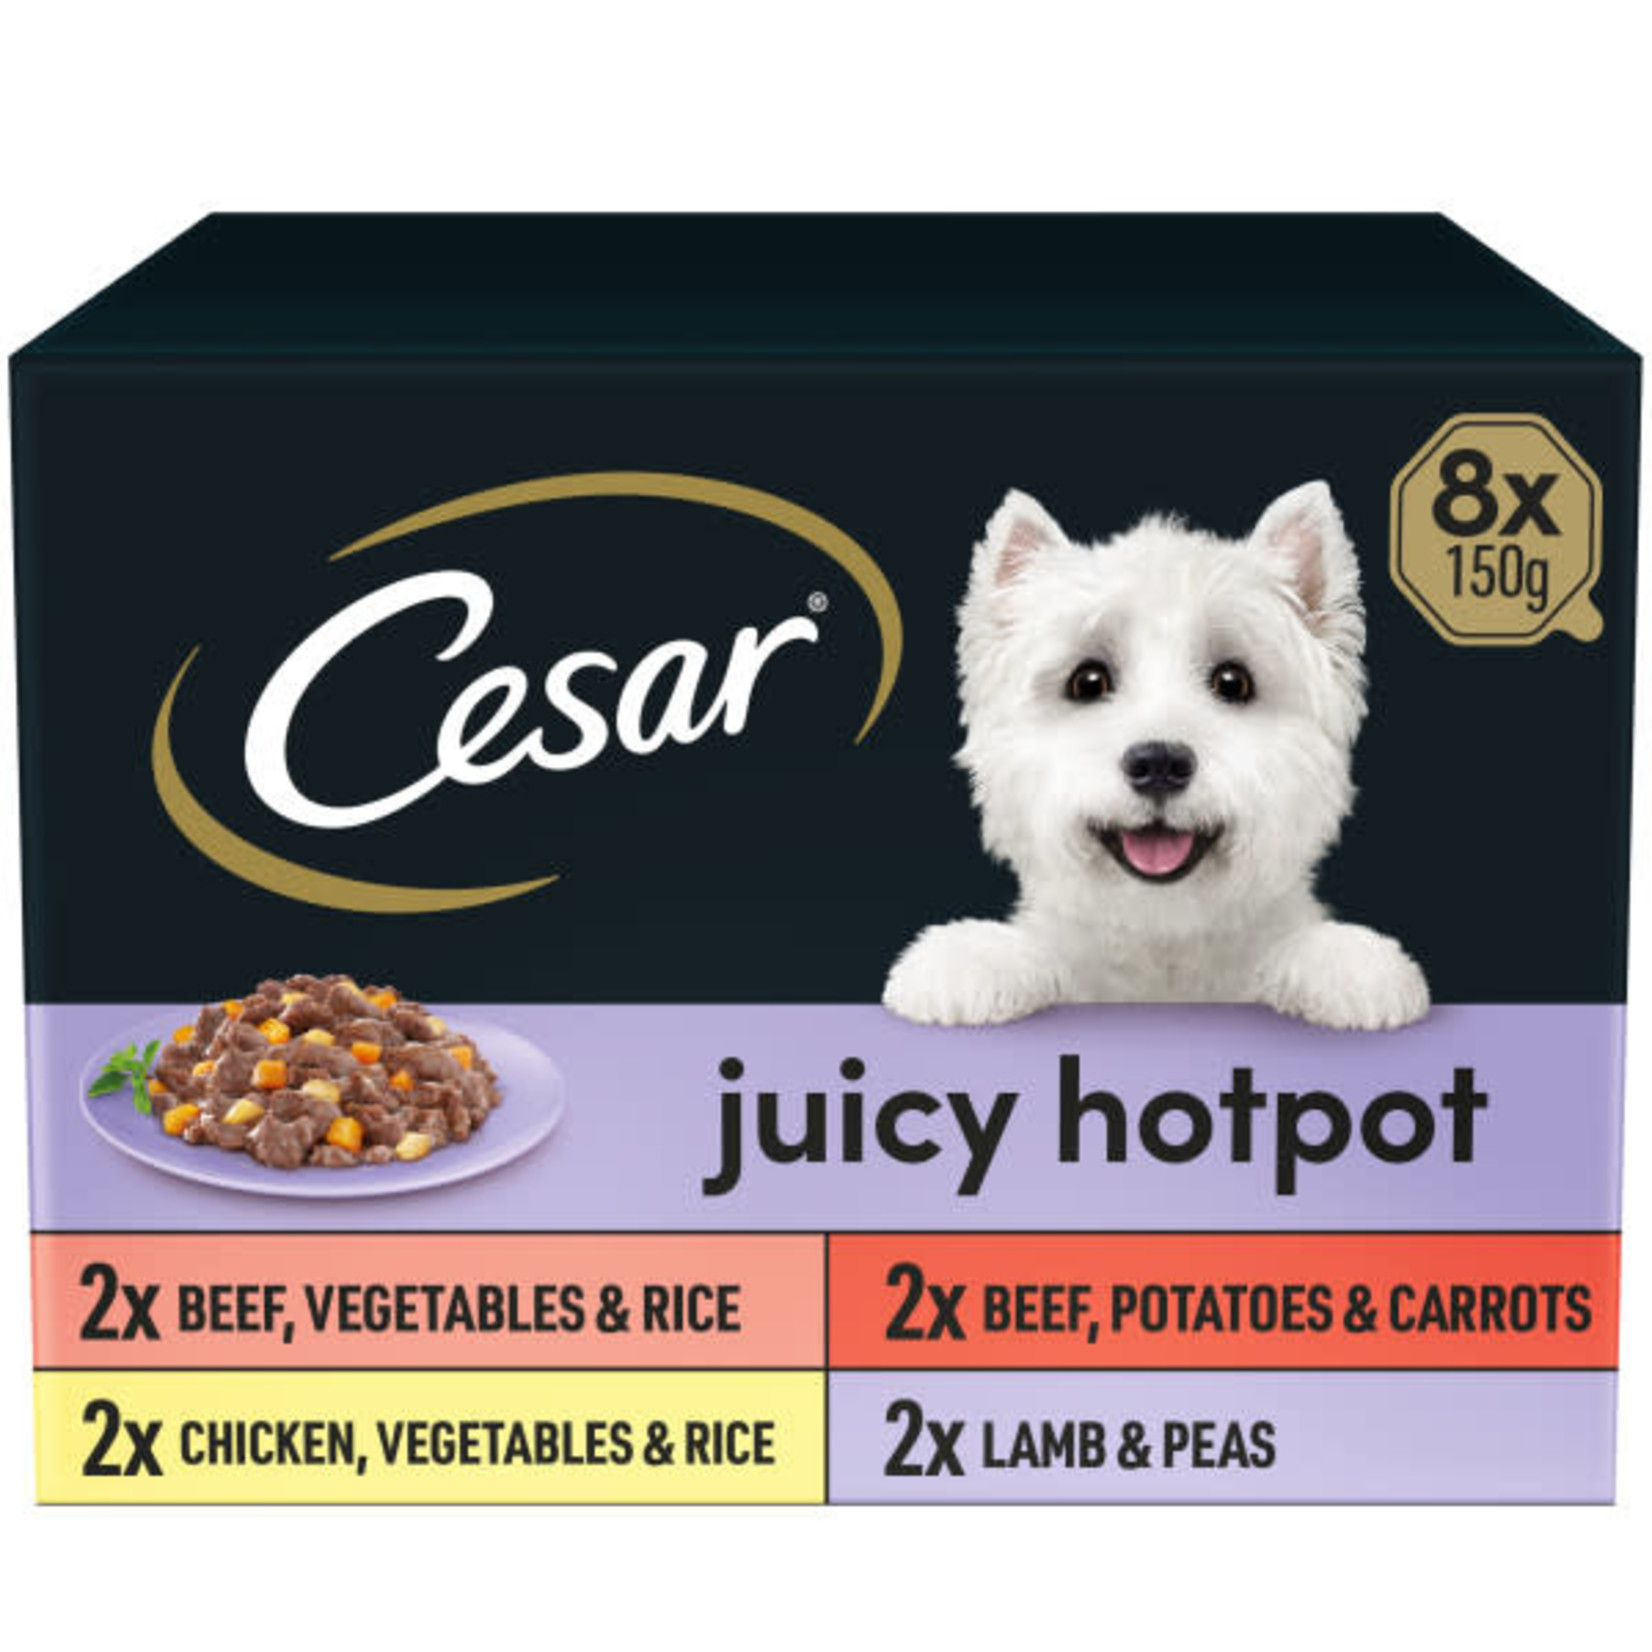 Cesar Adult Dog Wet Food Tray Juicy Hotpot Selection, 8 x 150g